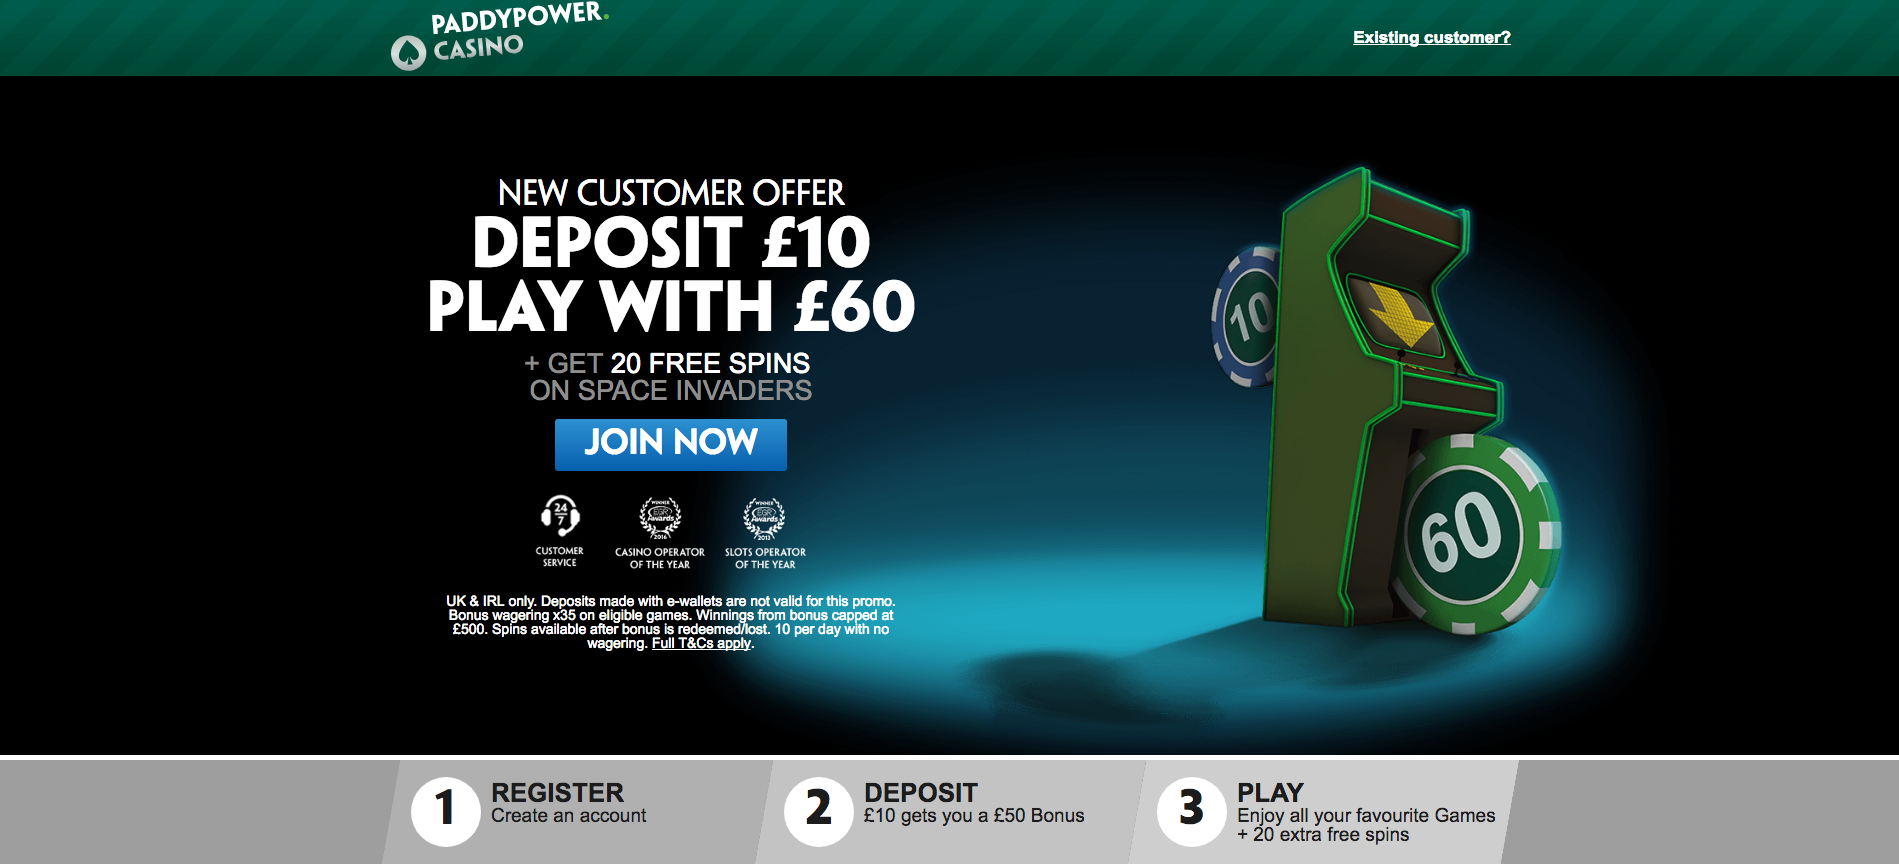 Paddy power cassinos online - 894616